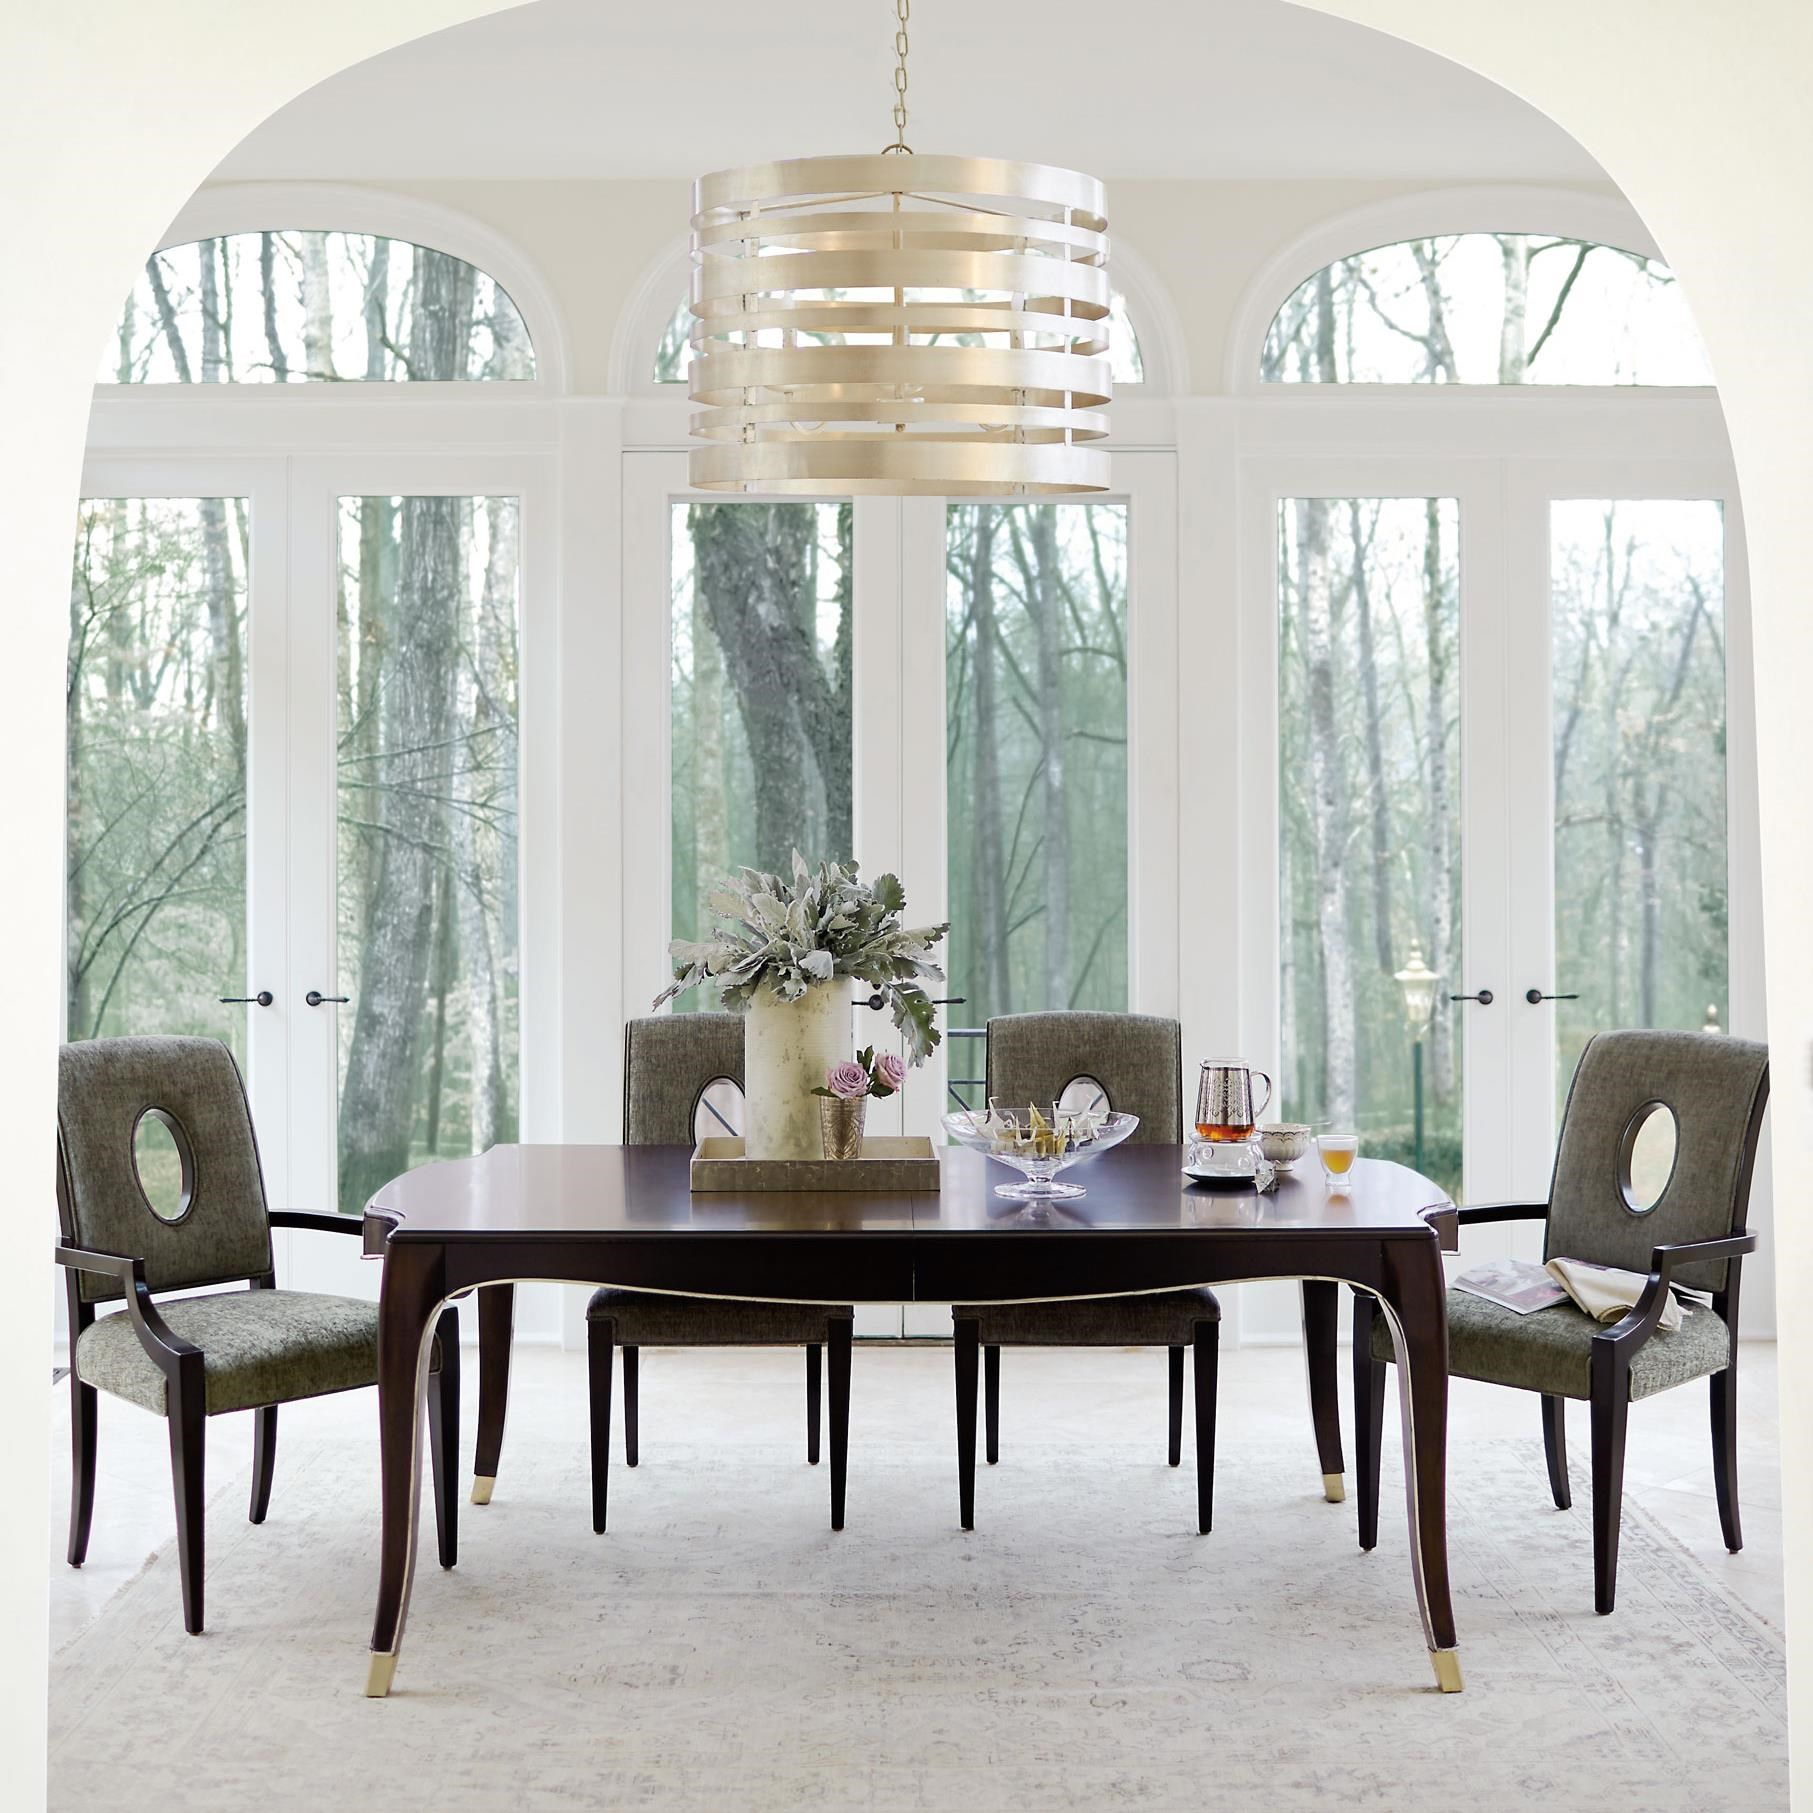 Bernhardt Miramont5 Piece Dining Table And Chair Set ...